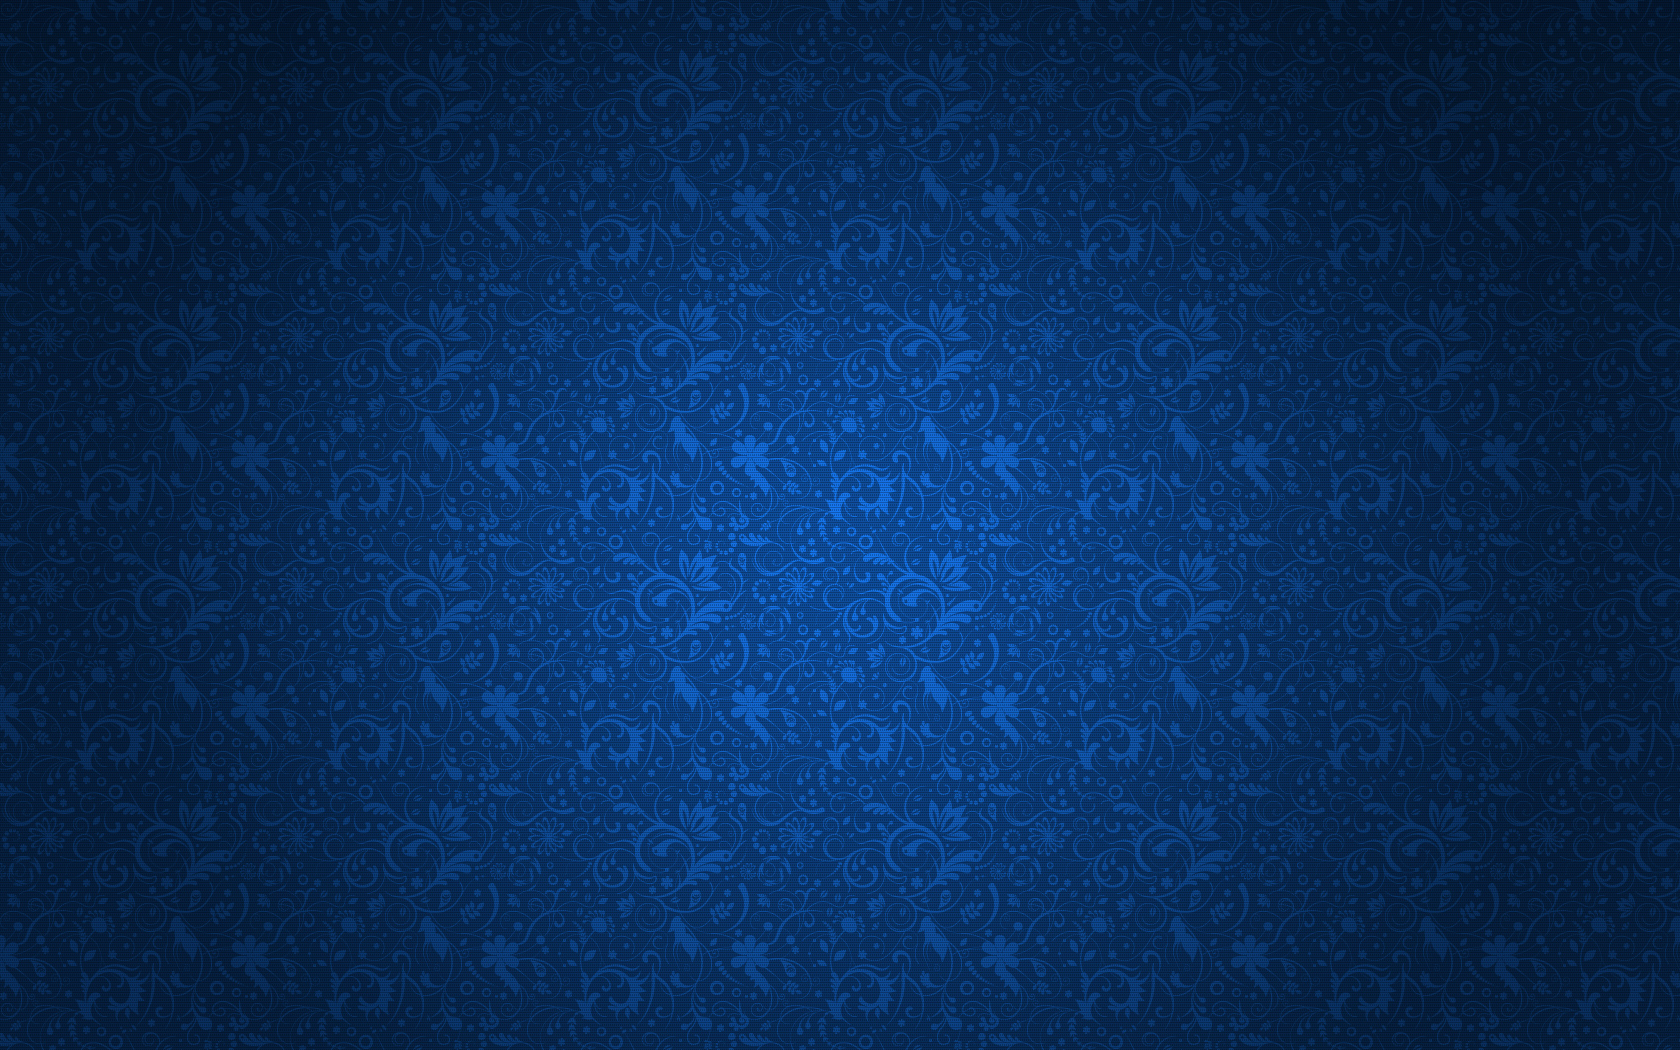 Navy blue wallpaper wallpapersafari for Navy blue wallpaper